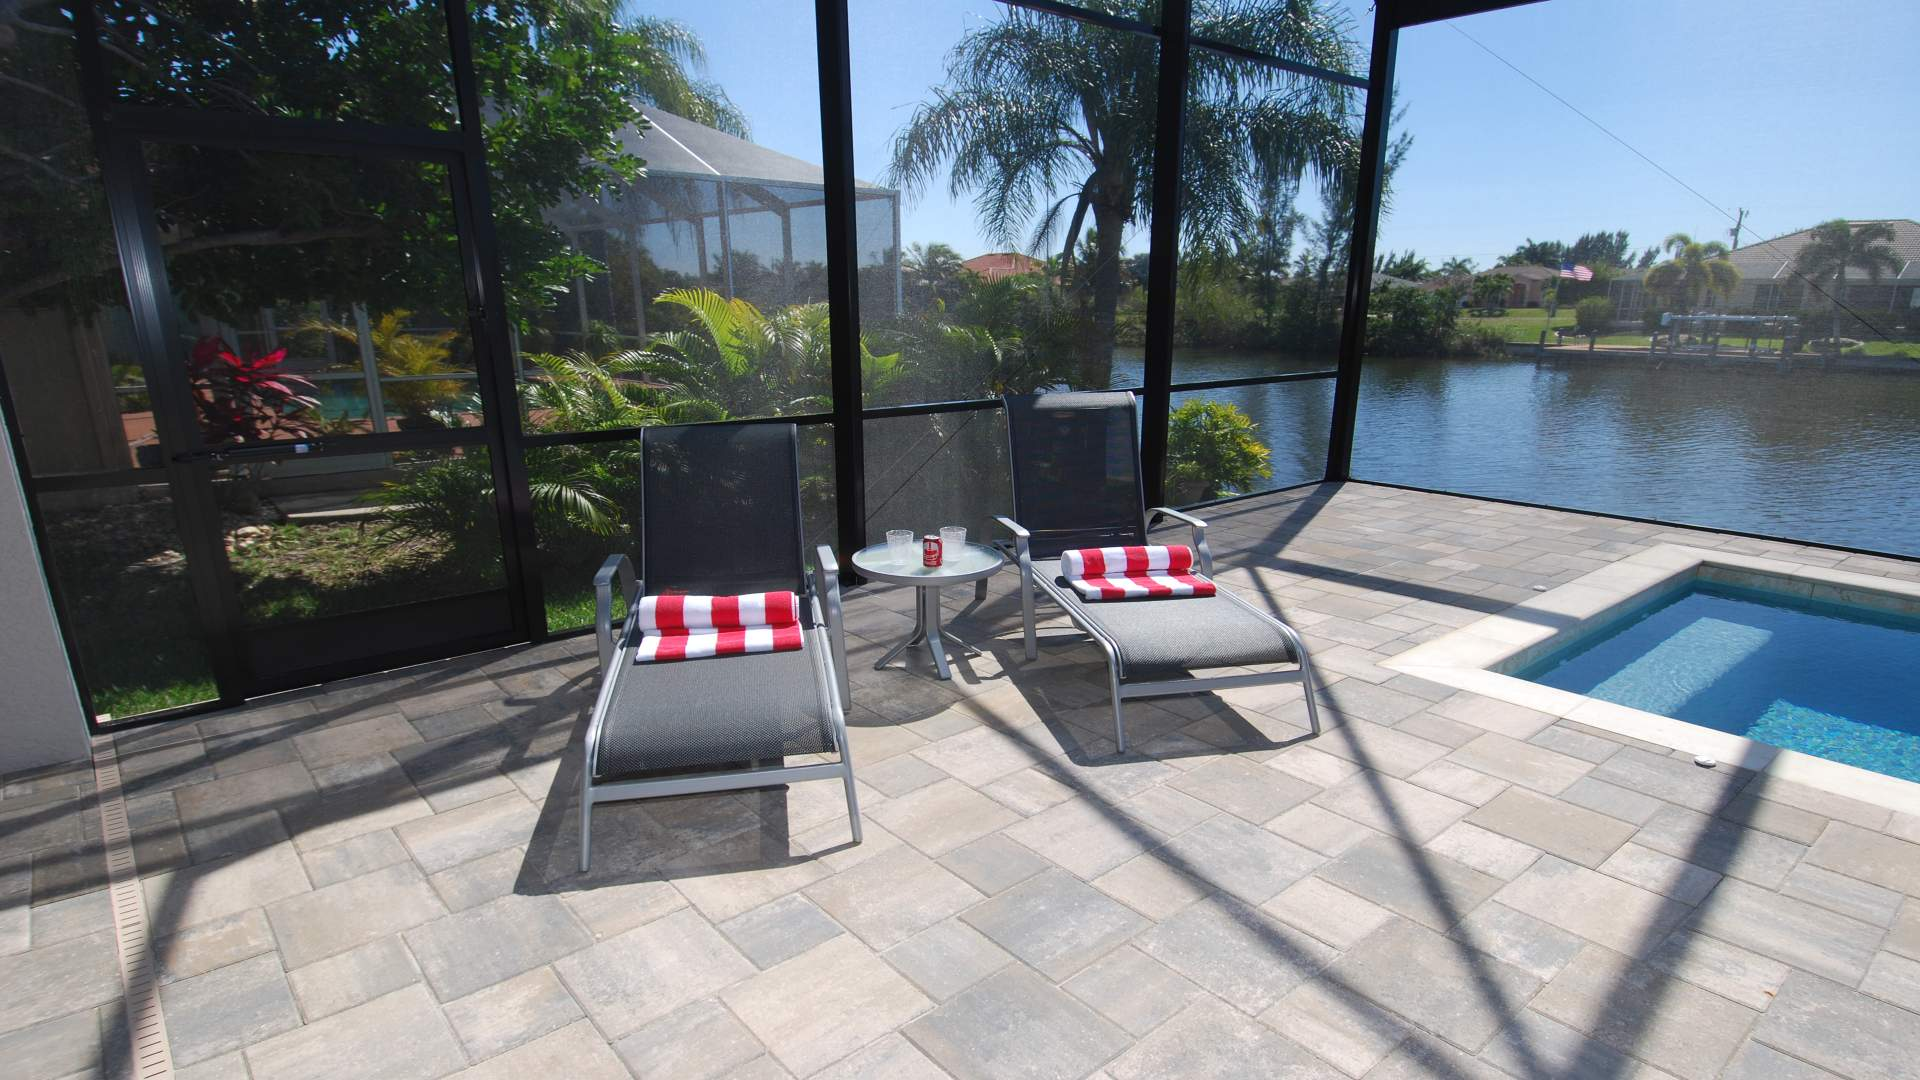 Outdoor Furniture Cape Coral Fl Part - 45: ... Luxury Outdoor Furniture Cape Coral Fl